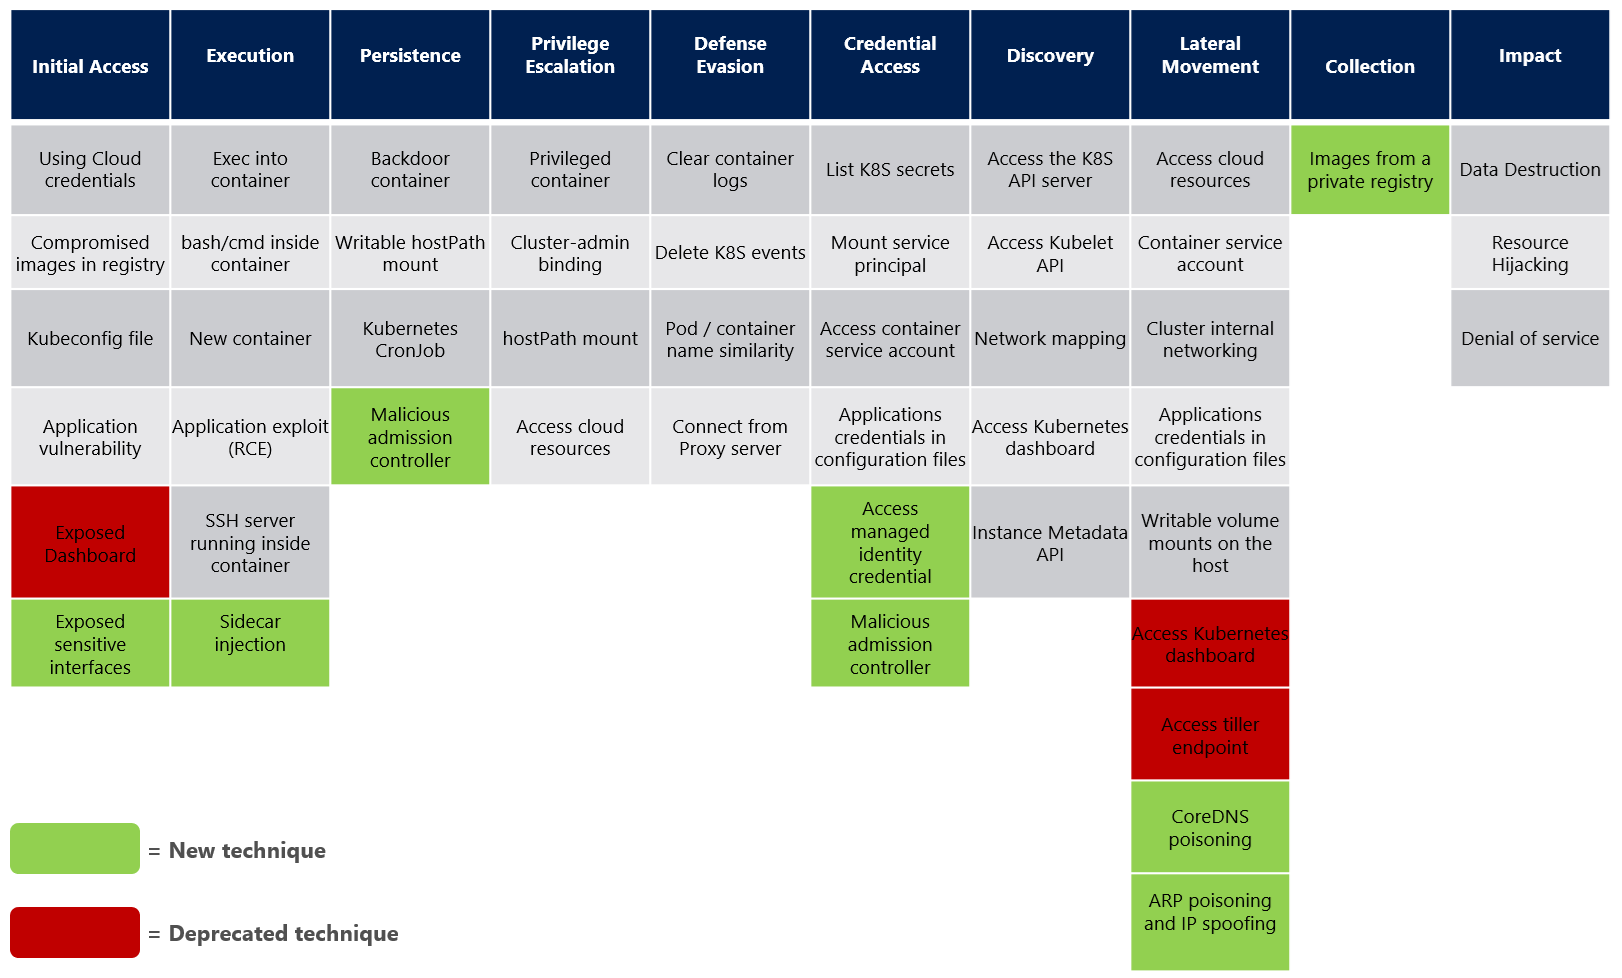 The threat matrix to Kubernetes. The matrix consists of the various attacking techniques that target Kubernetes.